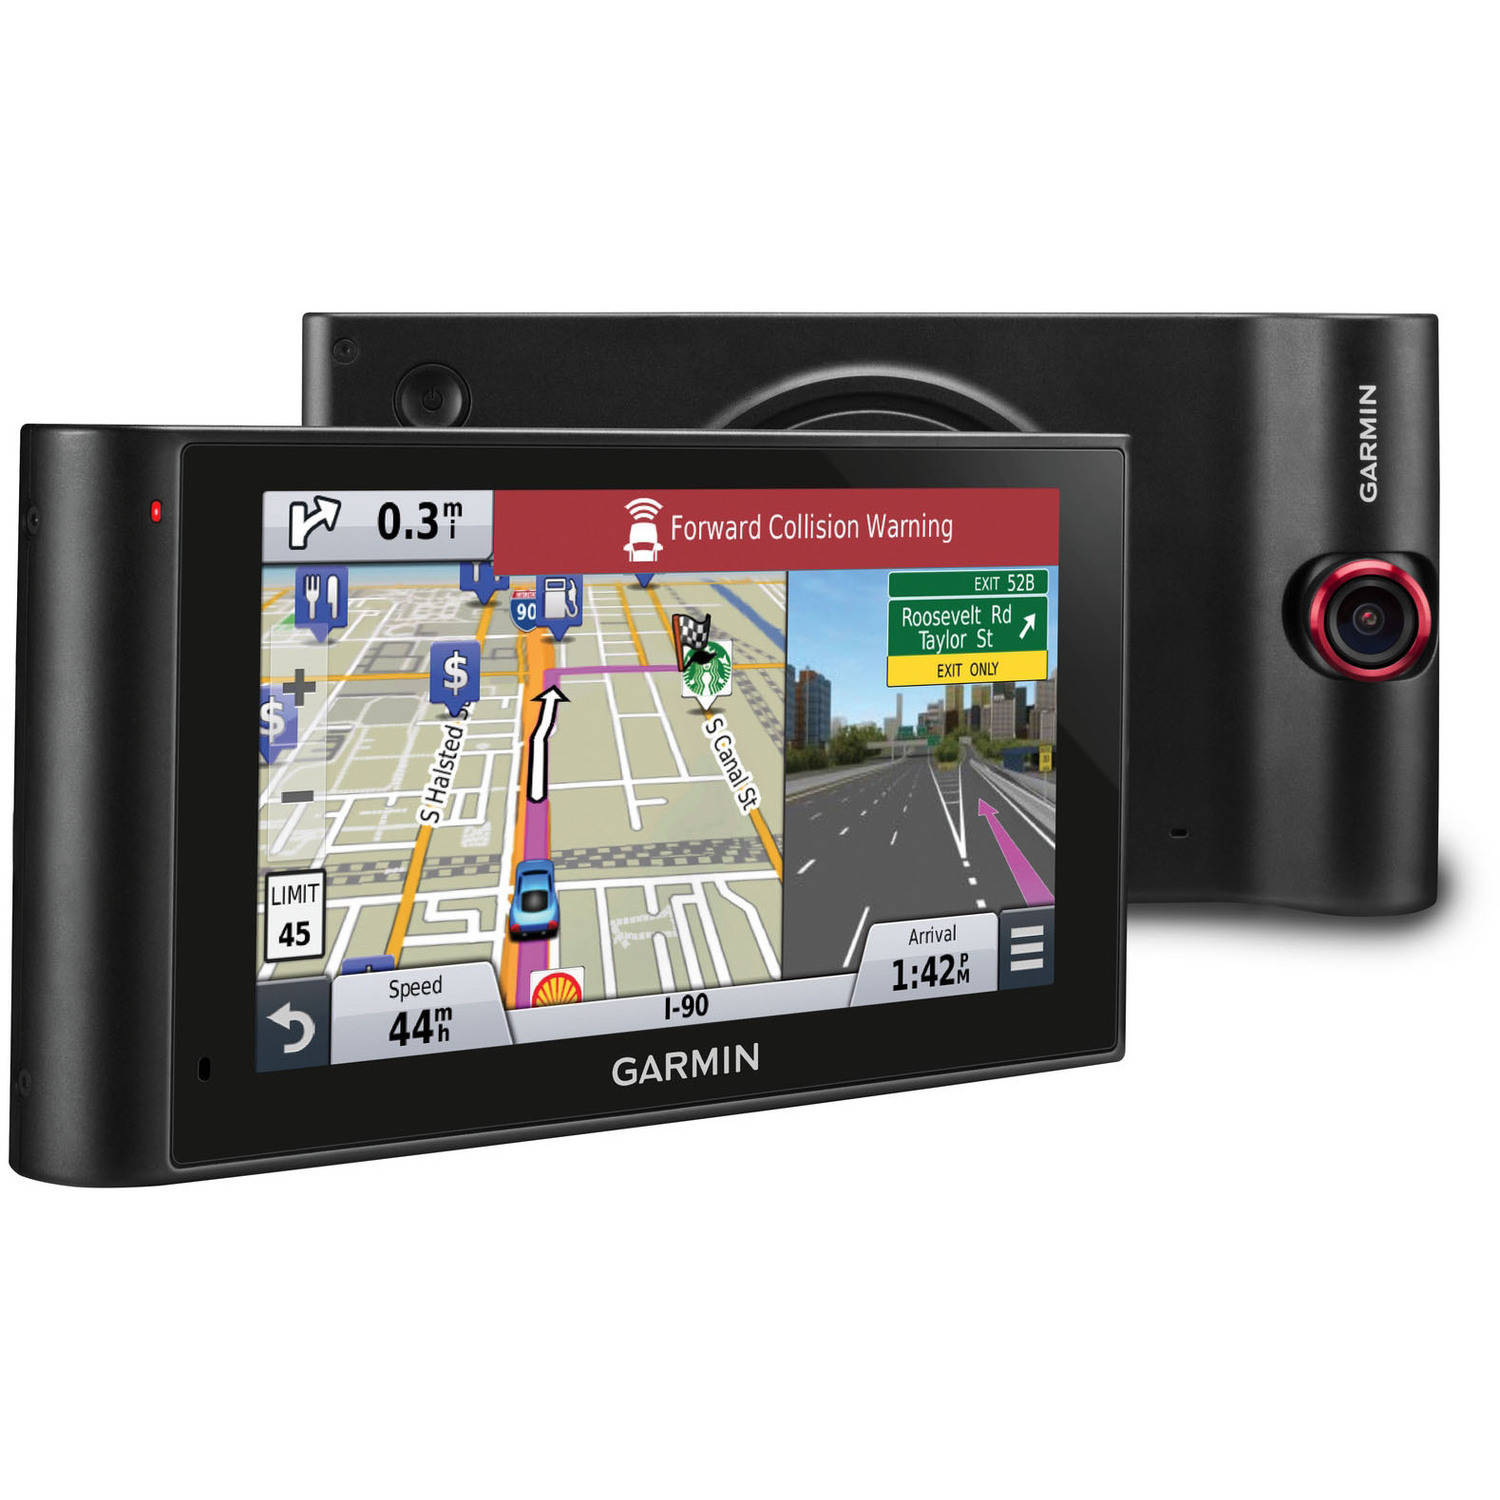 Garmin nuviCamLMT HD, Premium 6 inch GPS with Built-in Dash Cam, Free Lifetime Map Updates and HD Digital Traffic (North America Map)